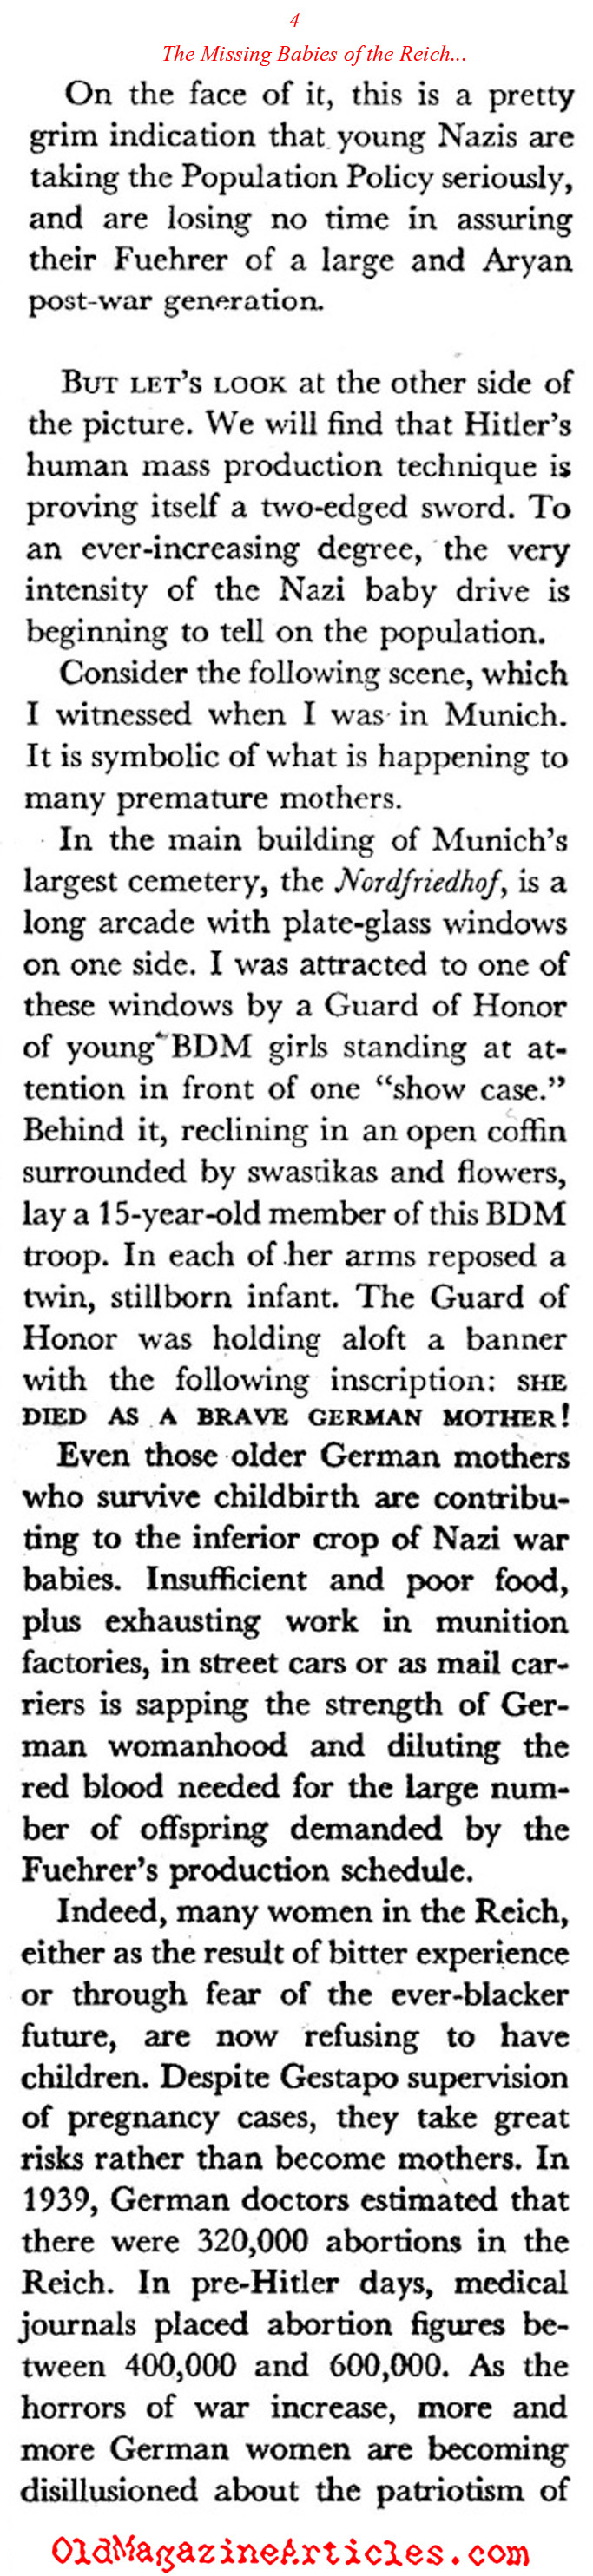 ''Healthy Eroticism'' in the Third Reich (Coronet Magazine, 1942)